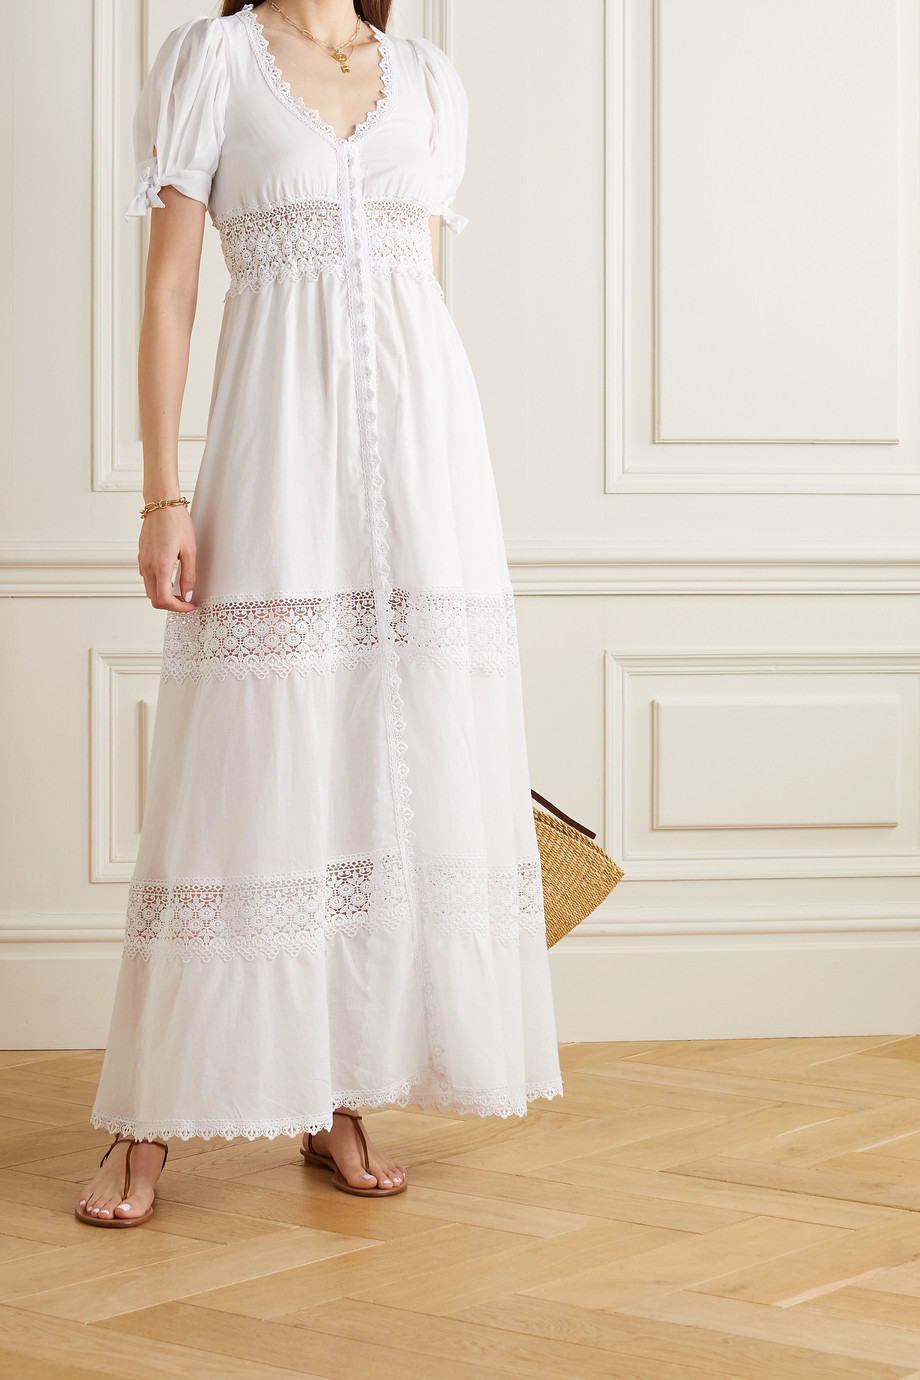 CHARO RUIZ Thelma crocheted lace-trimmed cotton-blend midi dress